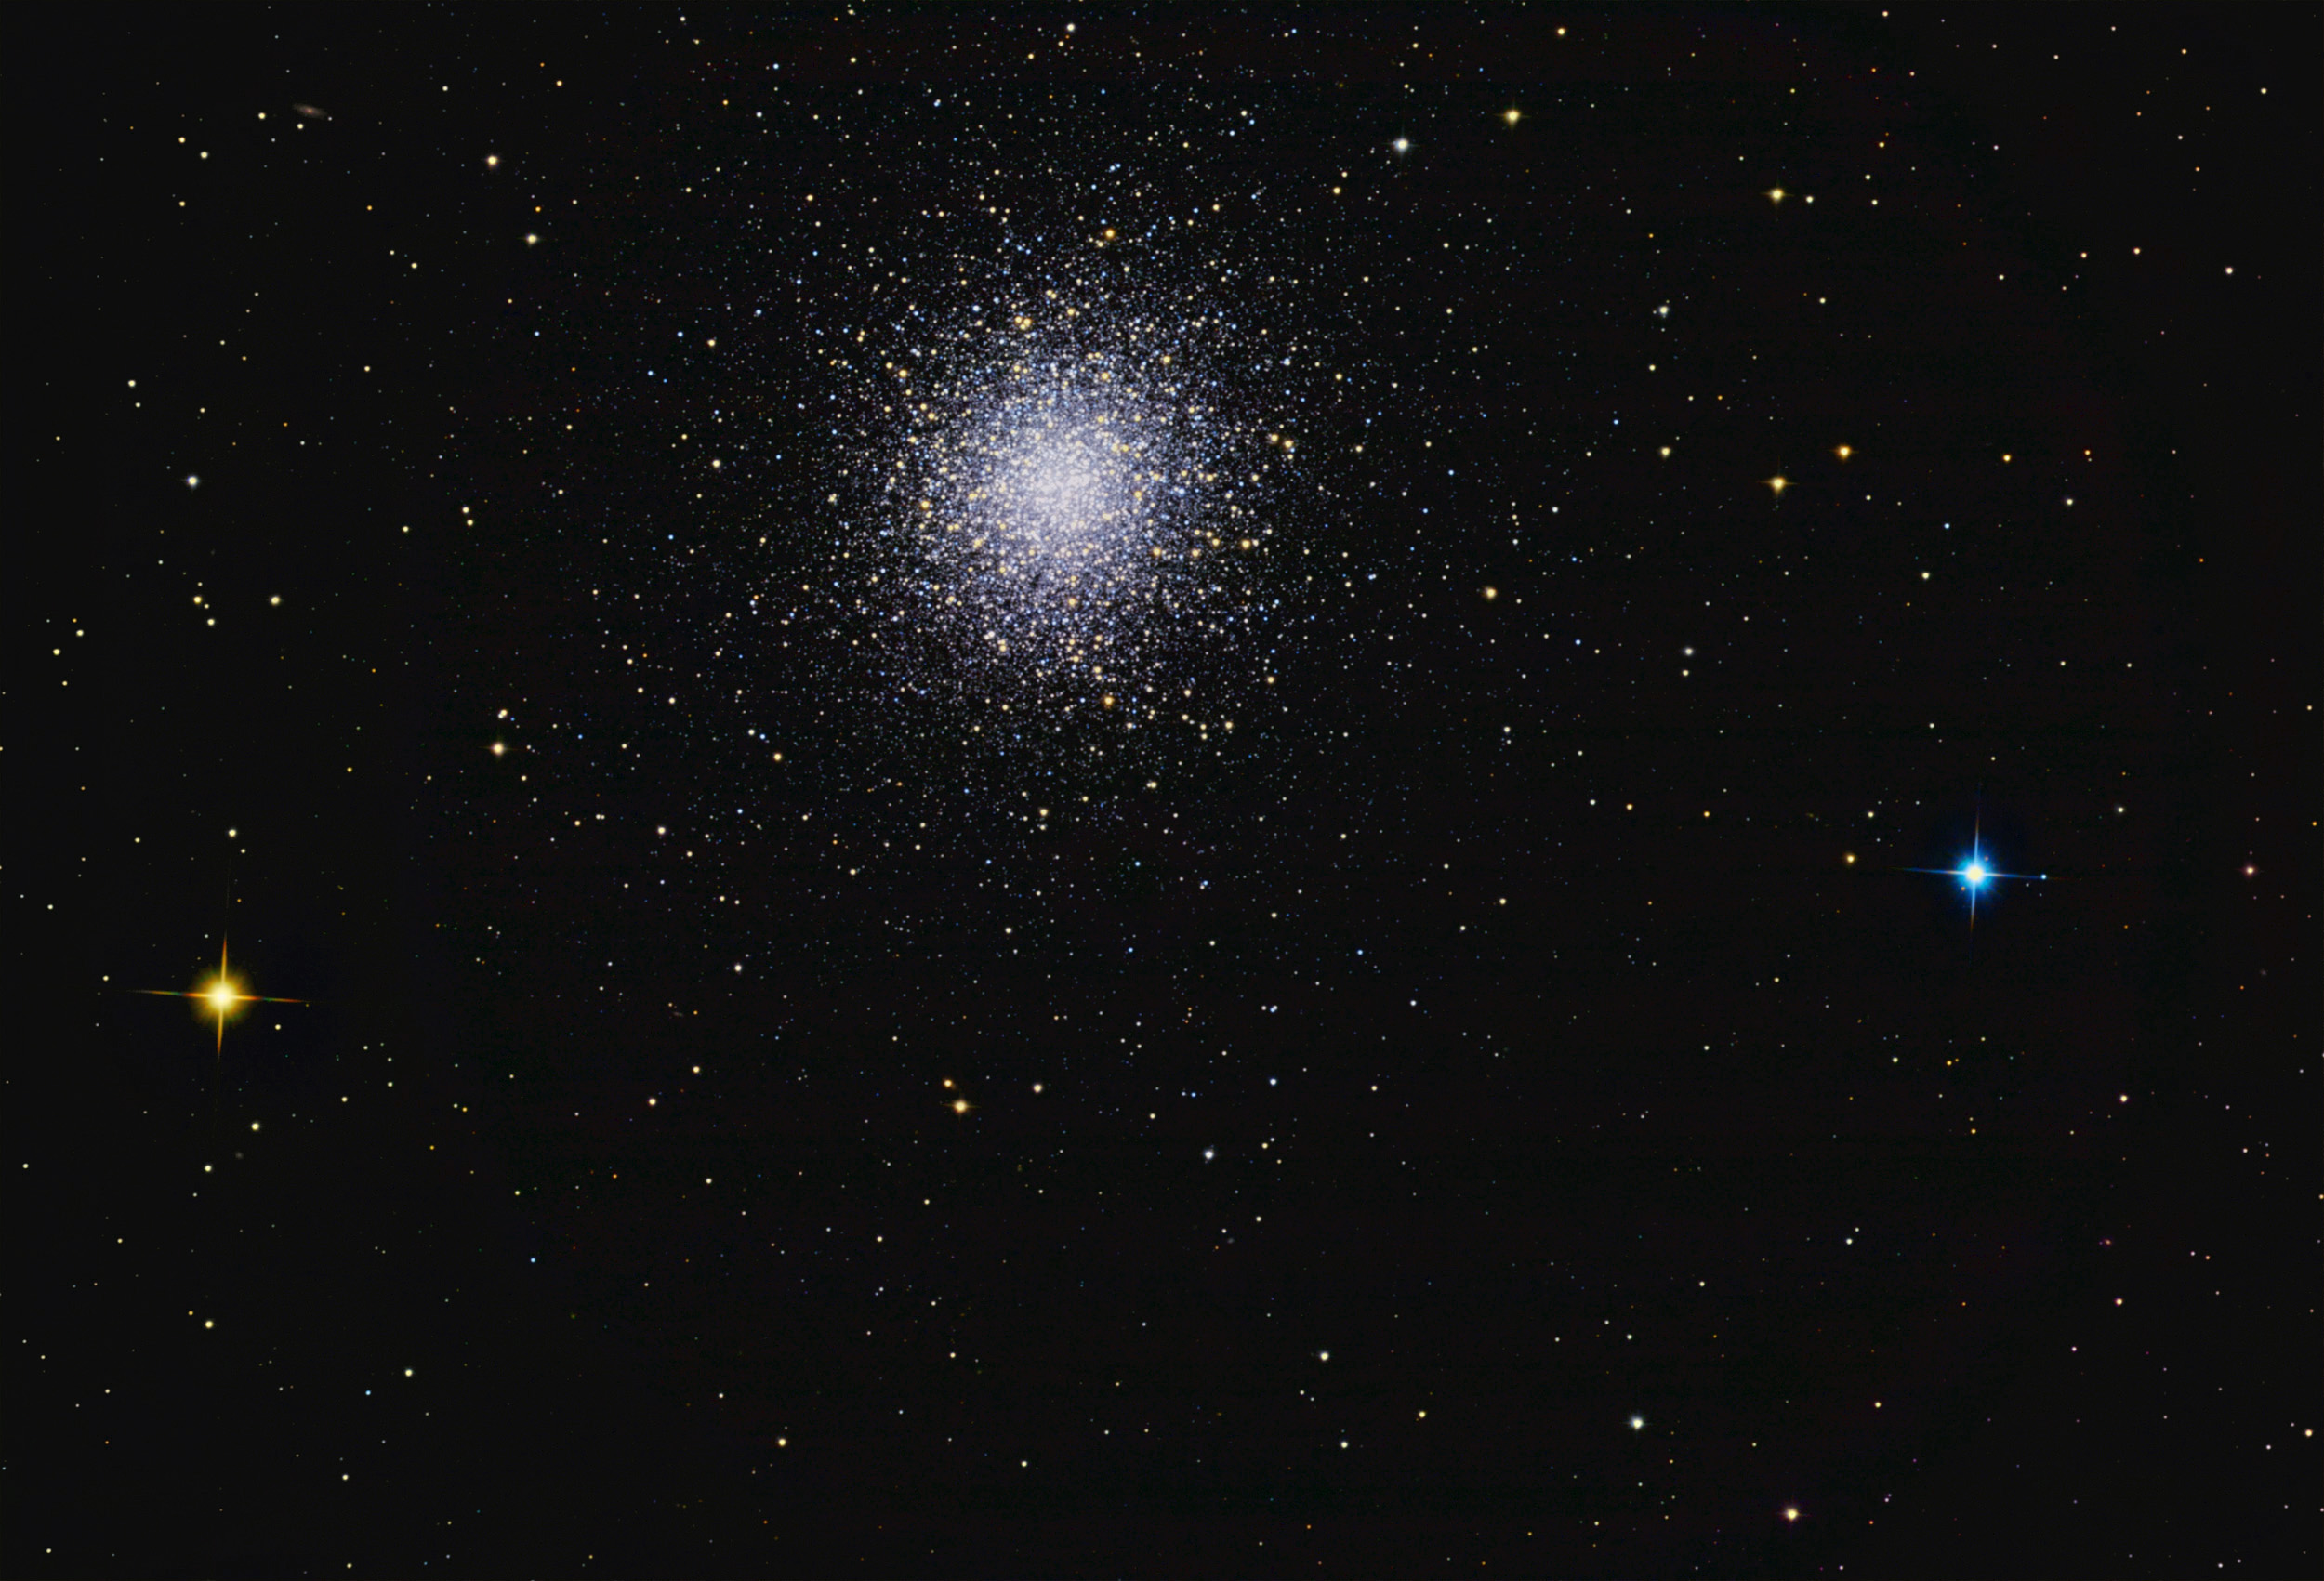 Great Globular Cluster in Hercules